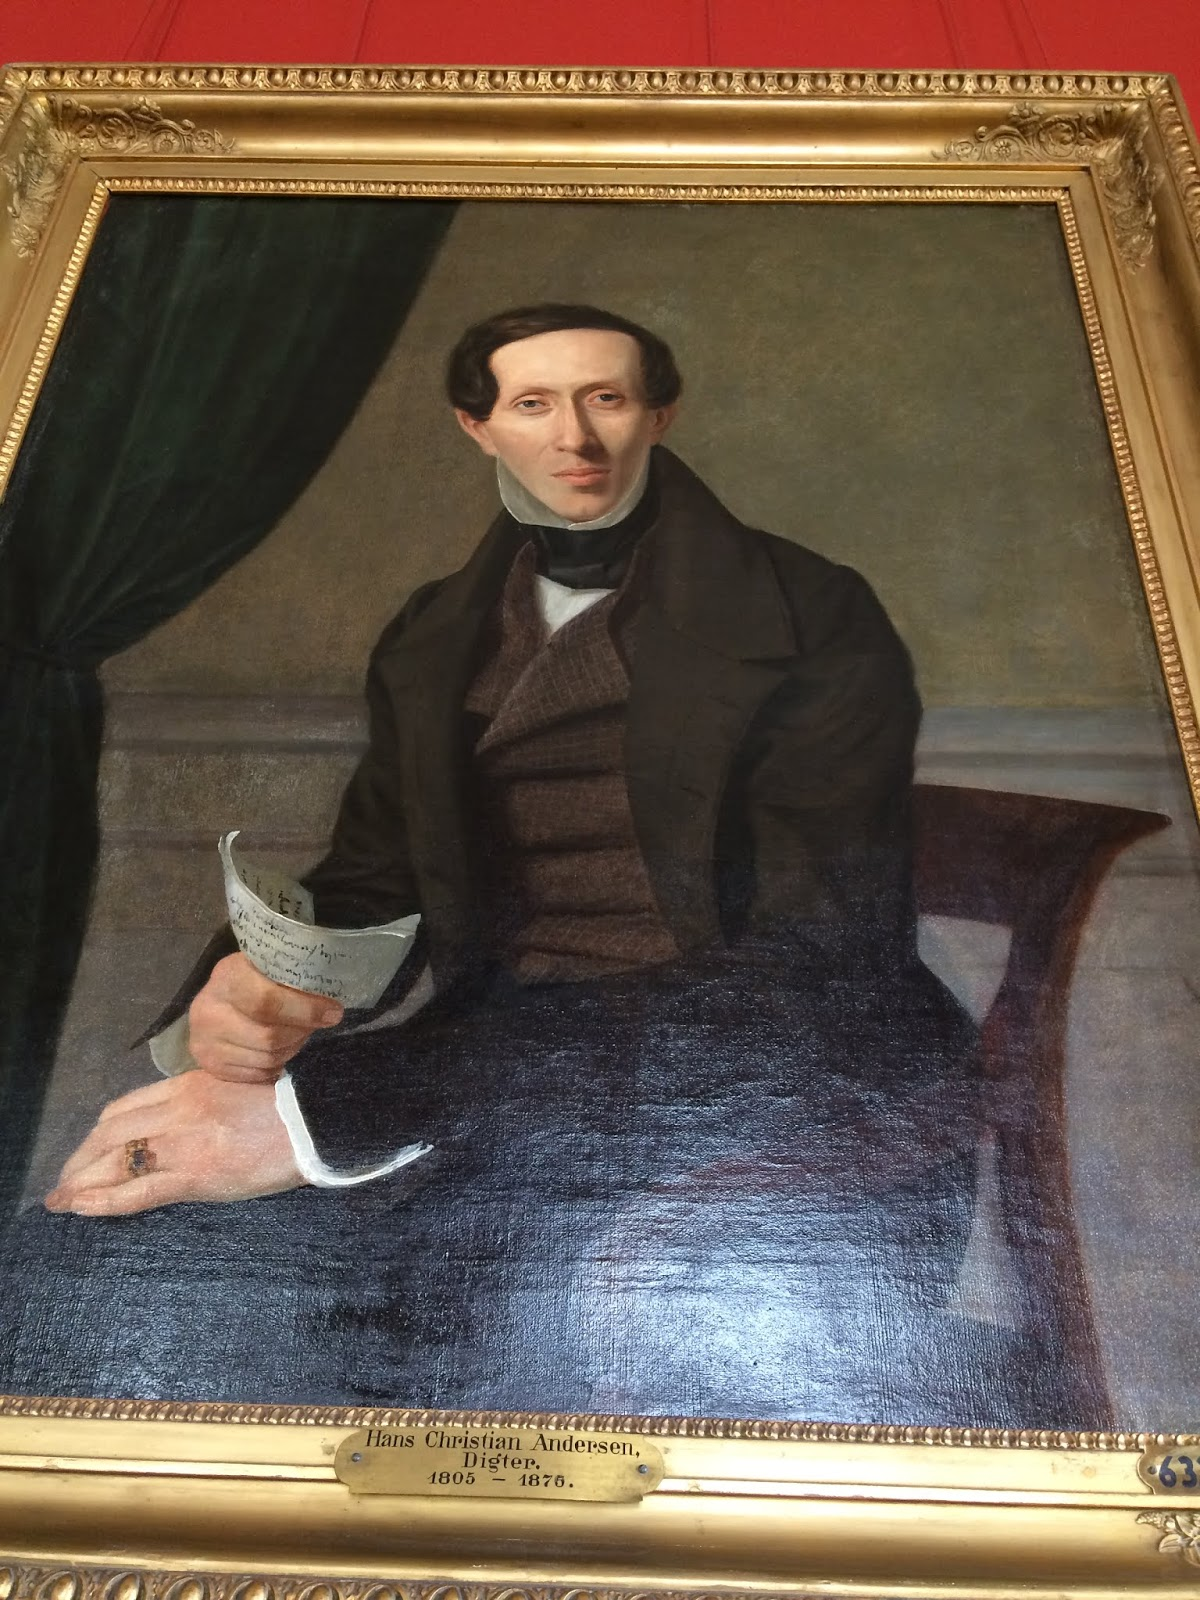 Portrait of Hans Christian Andersen in Frederiksborg Castle